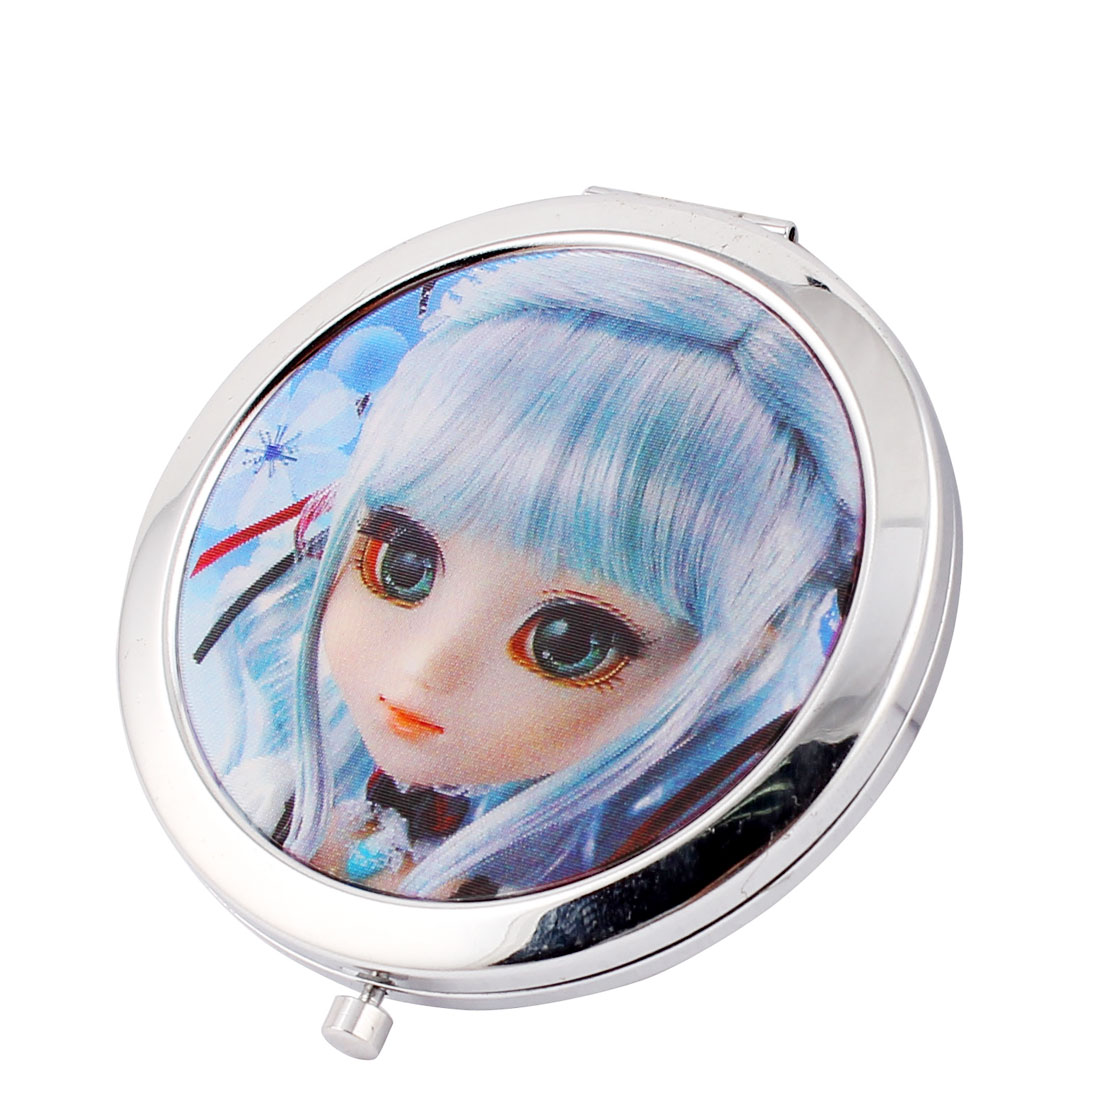 Handheld Girl Printed Double Sided Folding Metal Shell Cosmetic Mirror